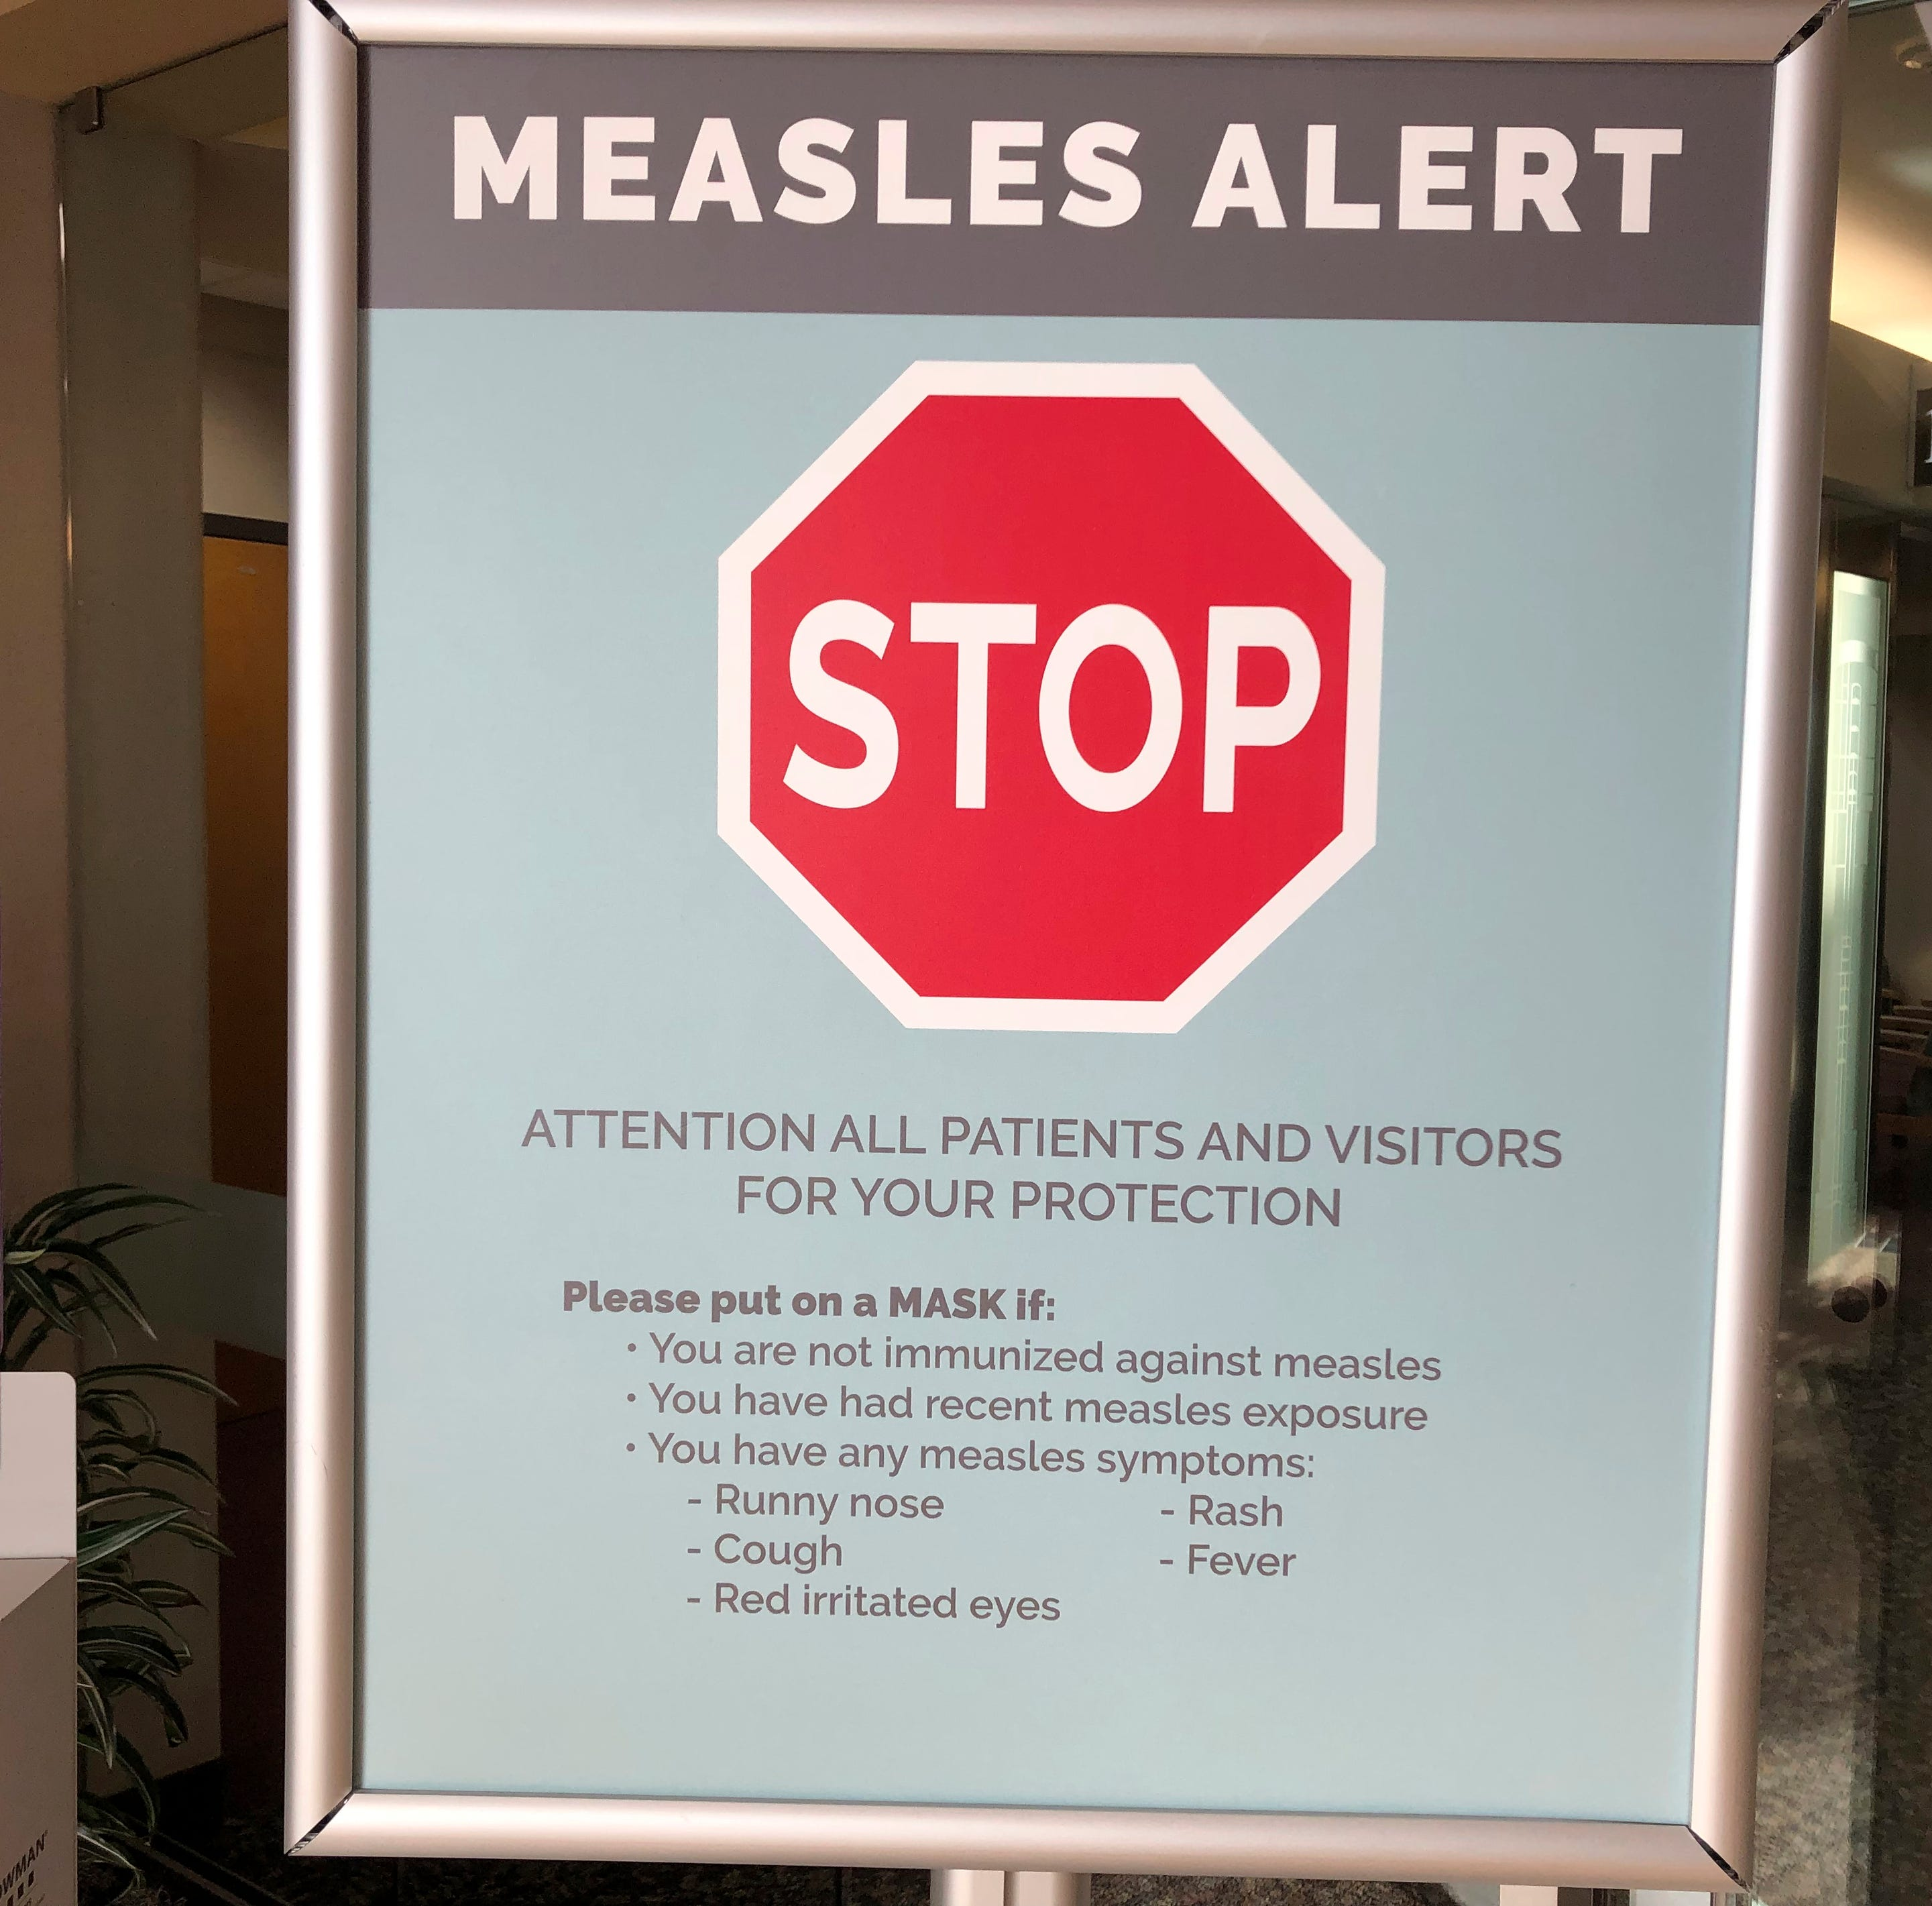 In this Jan. 30, 2019, file photo, a sign posted at The Vancouver Clinic in Vancouver, Wash., warns patients and visitors of a measles outbreak. The focus on measles in the Pacific Northwest intensified Friday, March 1, 2019, as public health officials in Oregon announced a new case of the highly contagious disease unrelated to an ongoing outbreak in Washington state that's sickened 68 people so far.